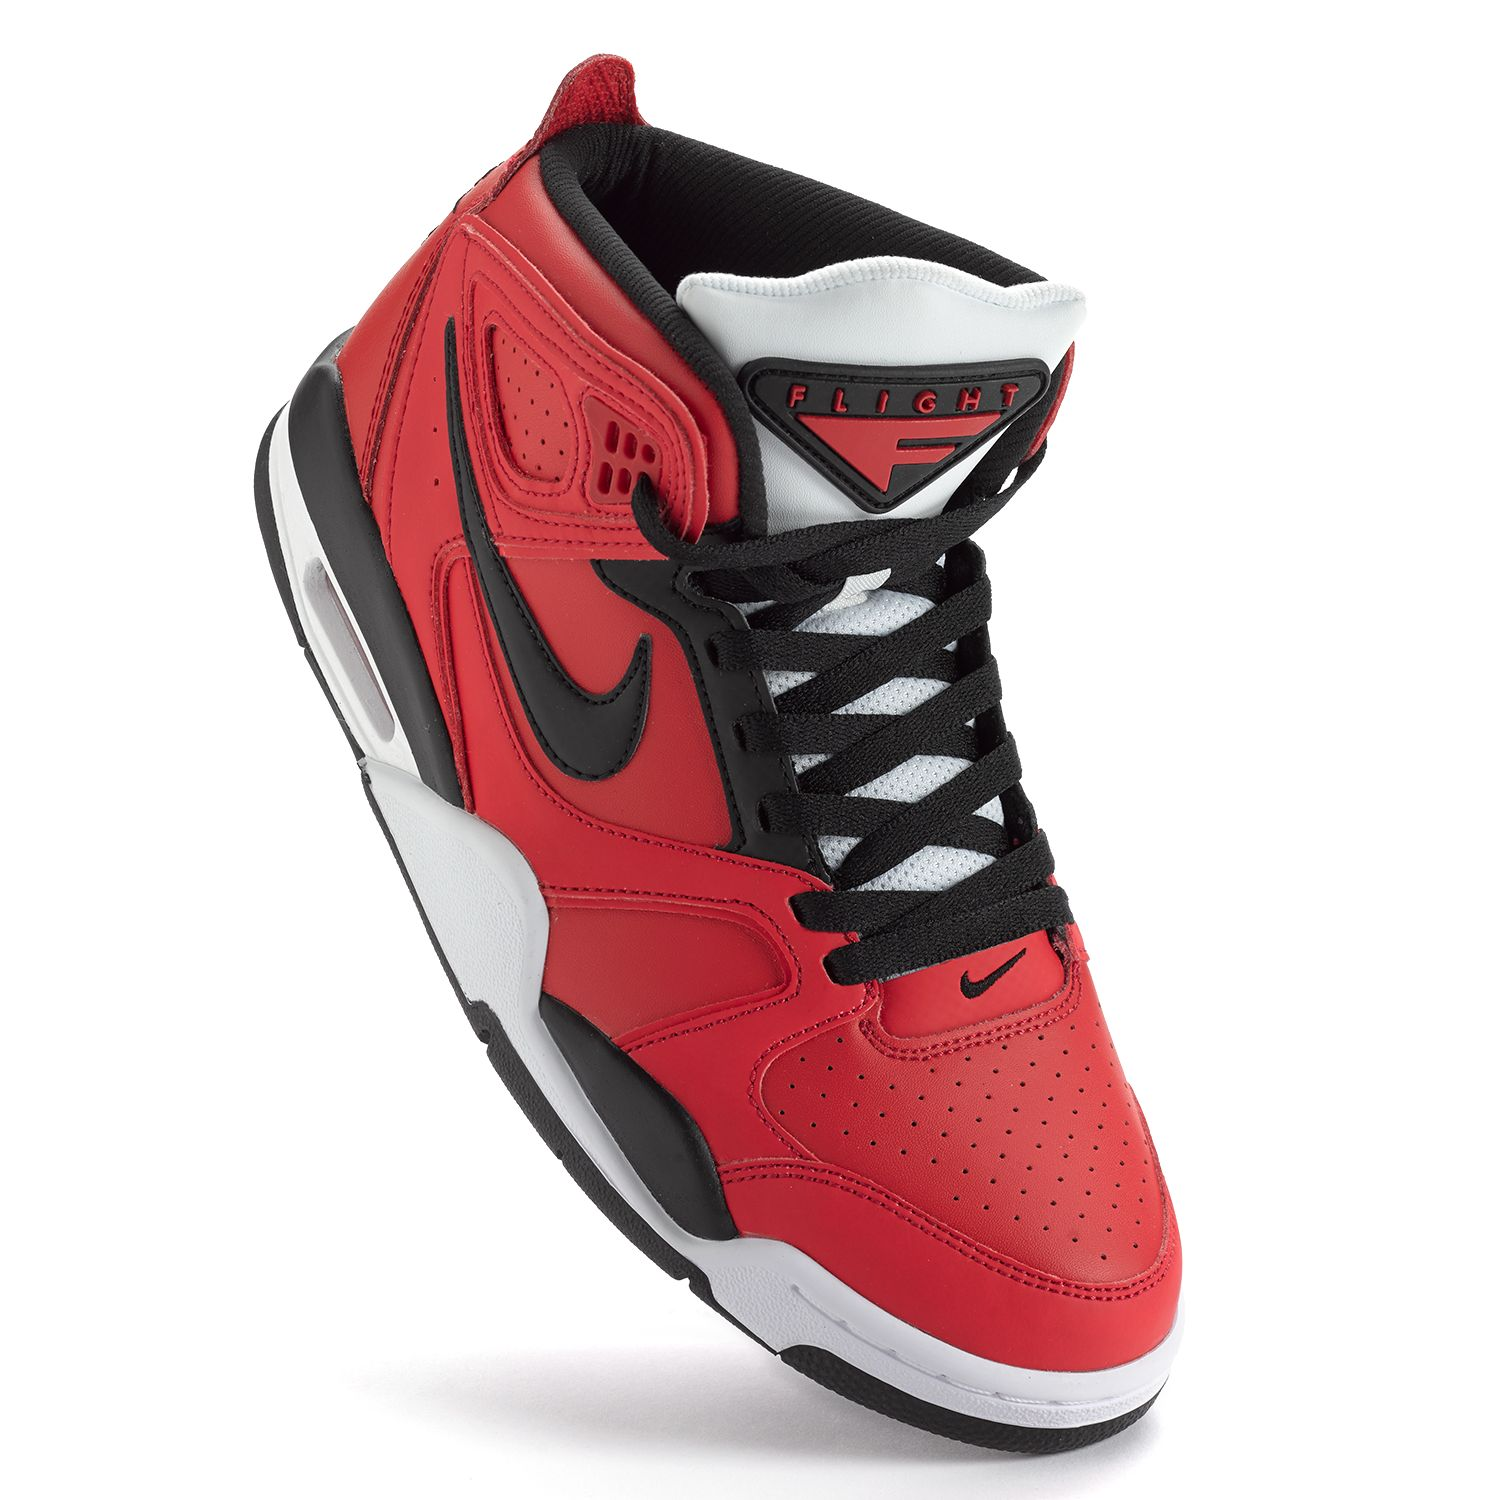 Nike Red Air Flight Falcon High-Performance Basketball Shoes - Men